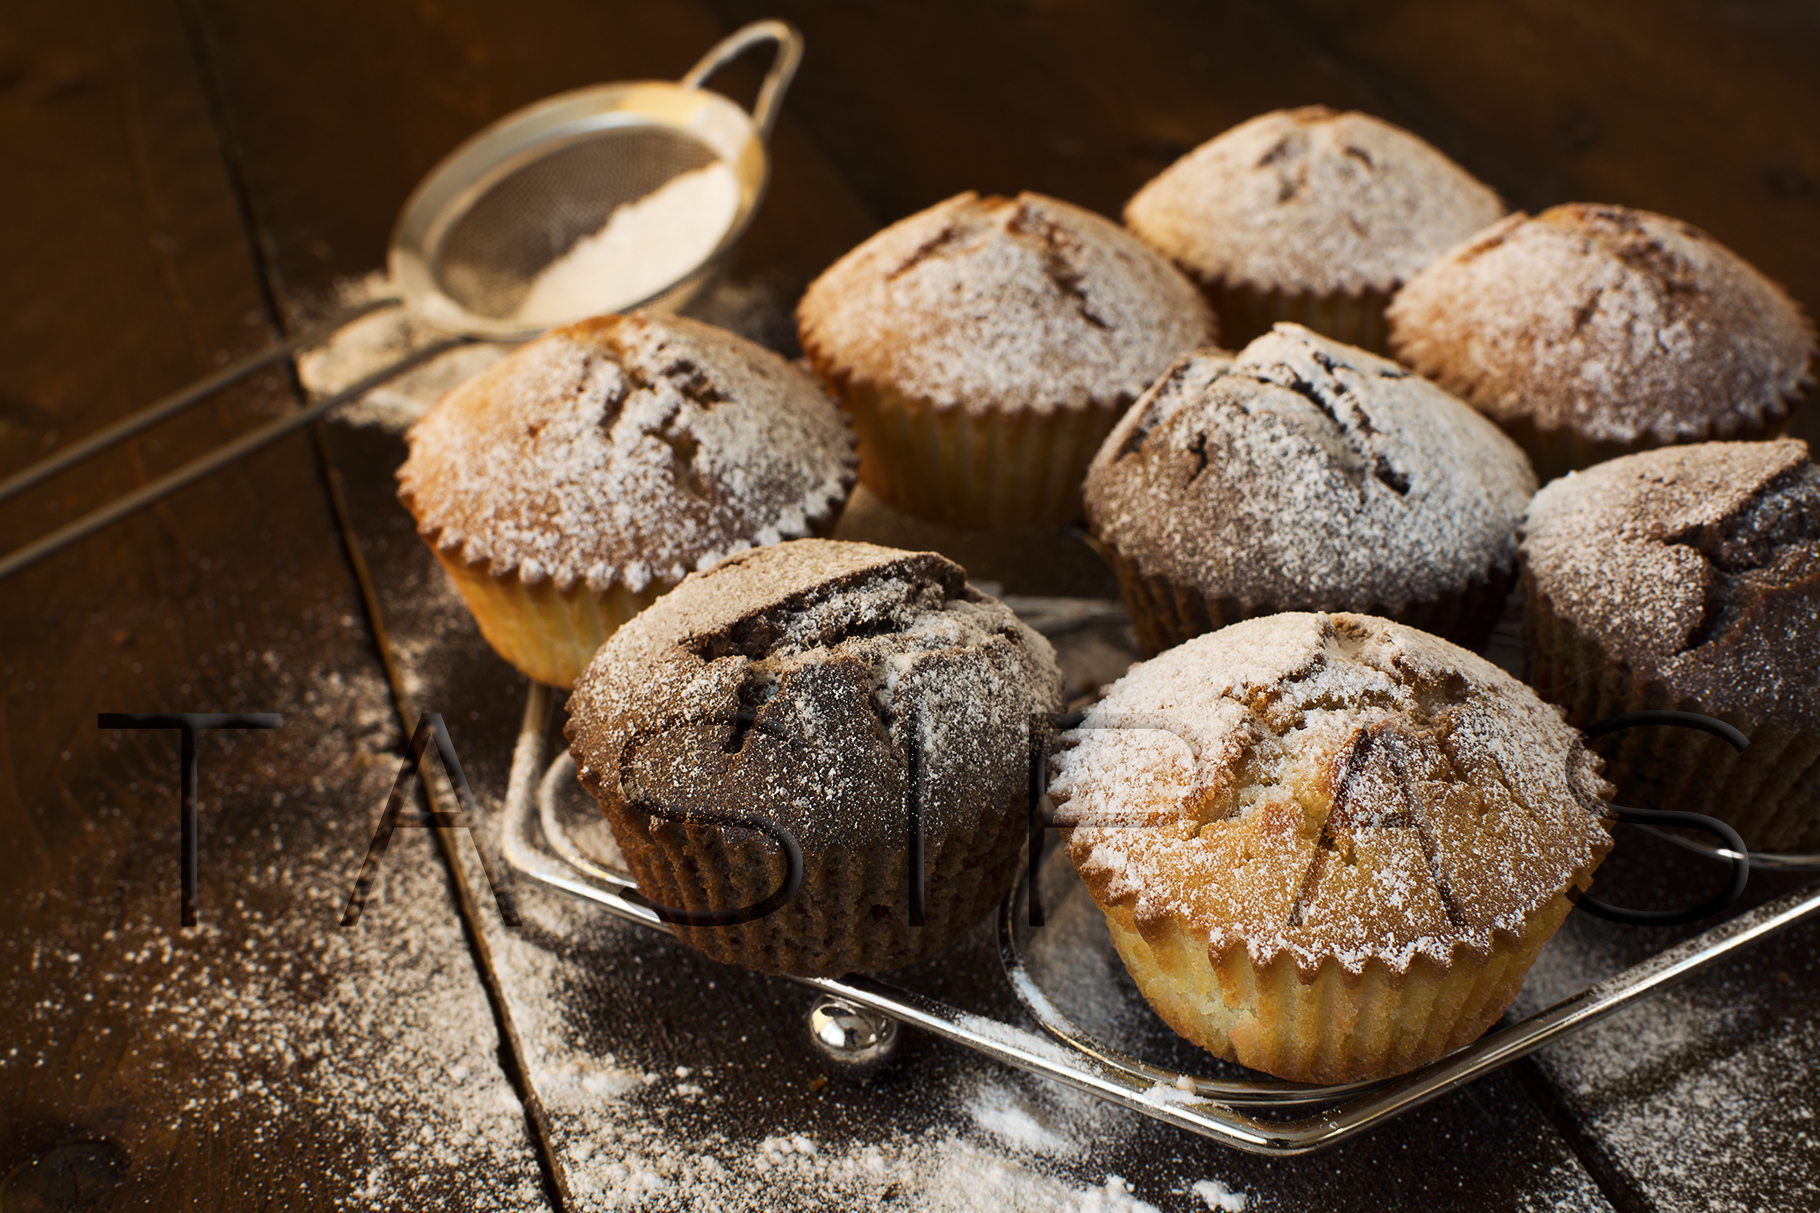 Muffins on metal stand example image 1